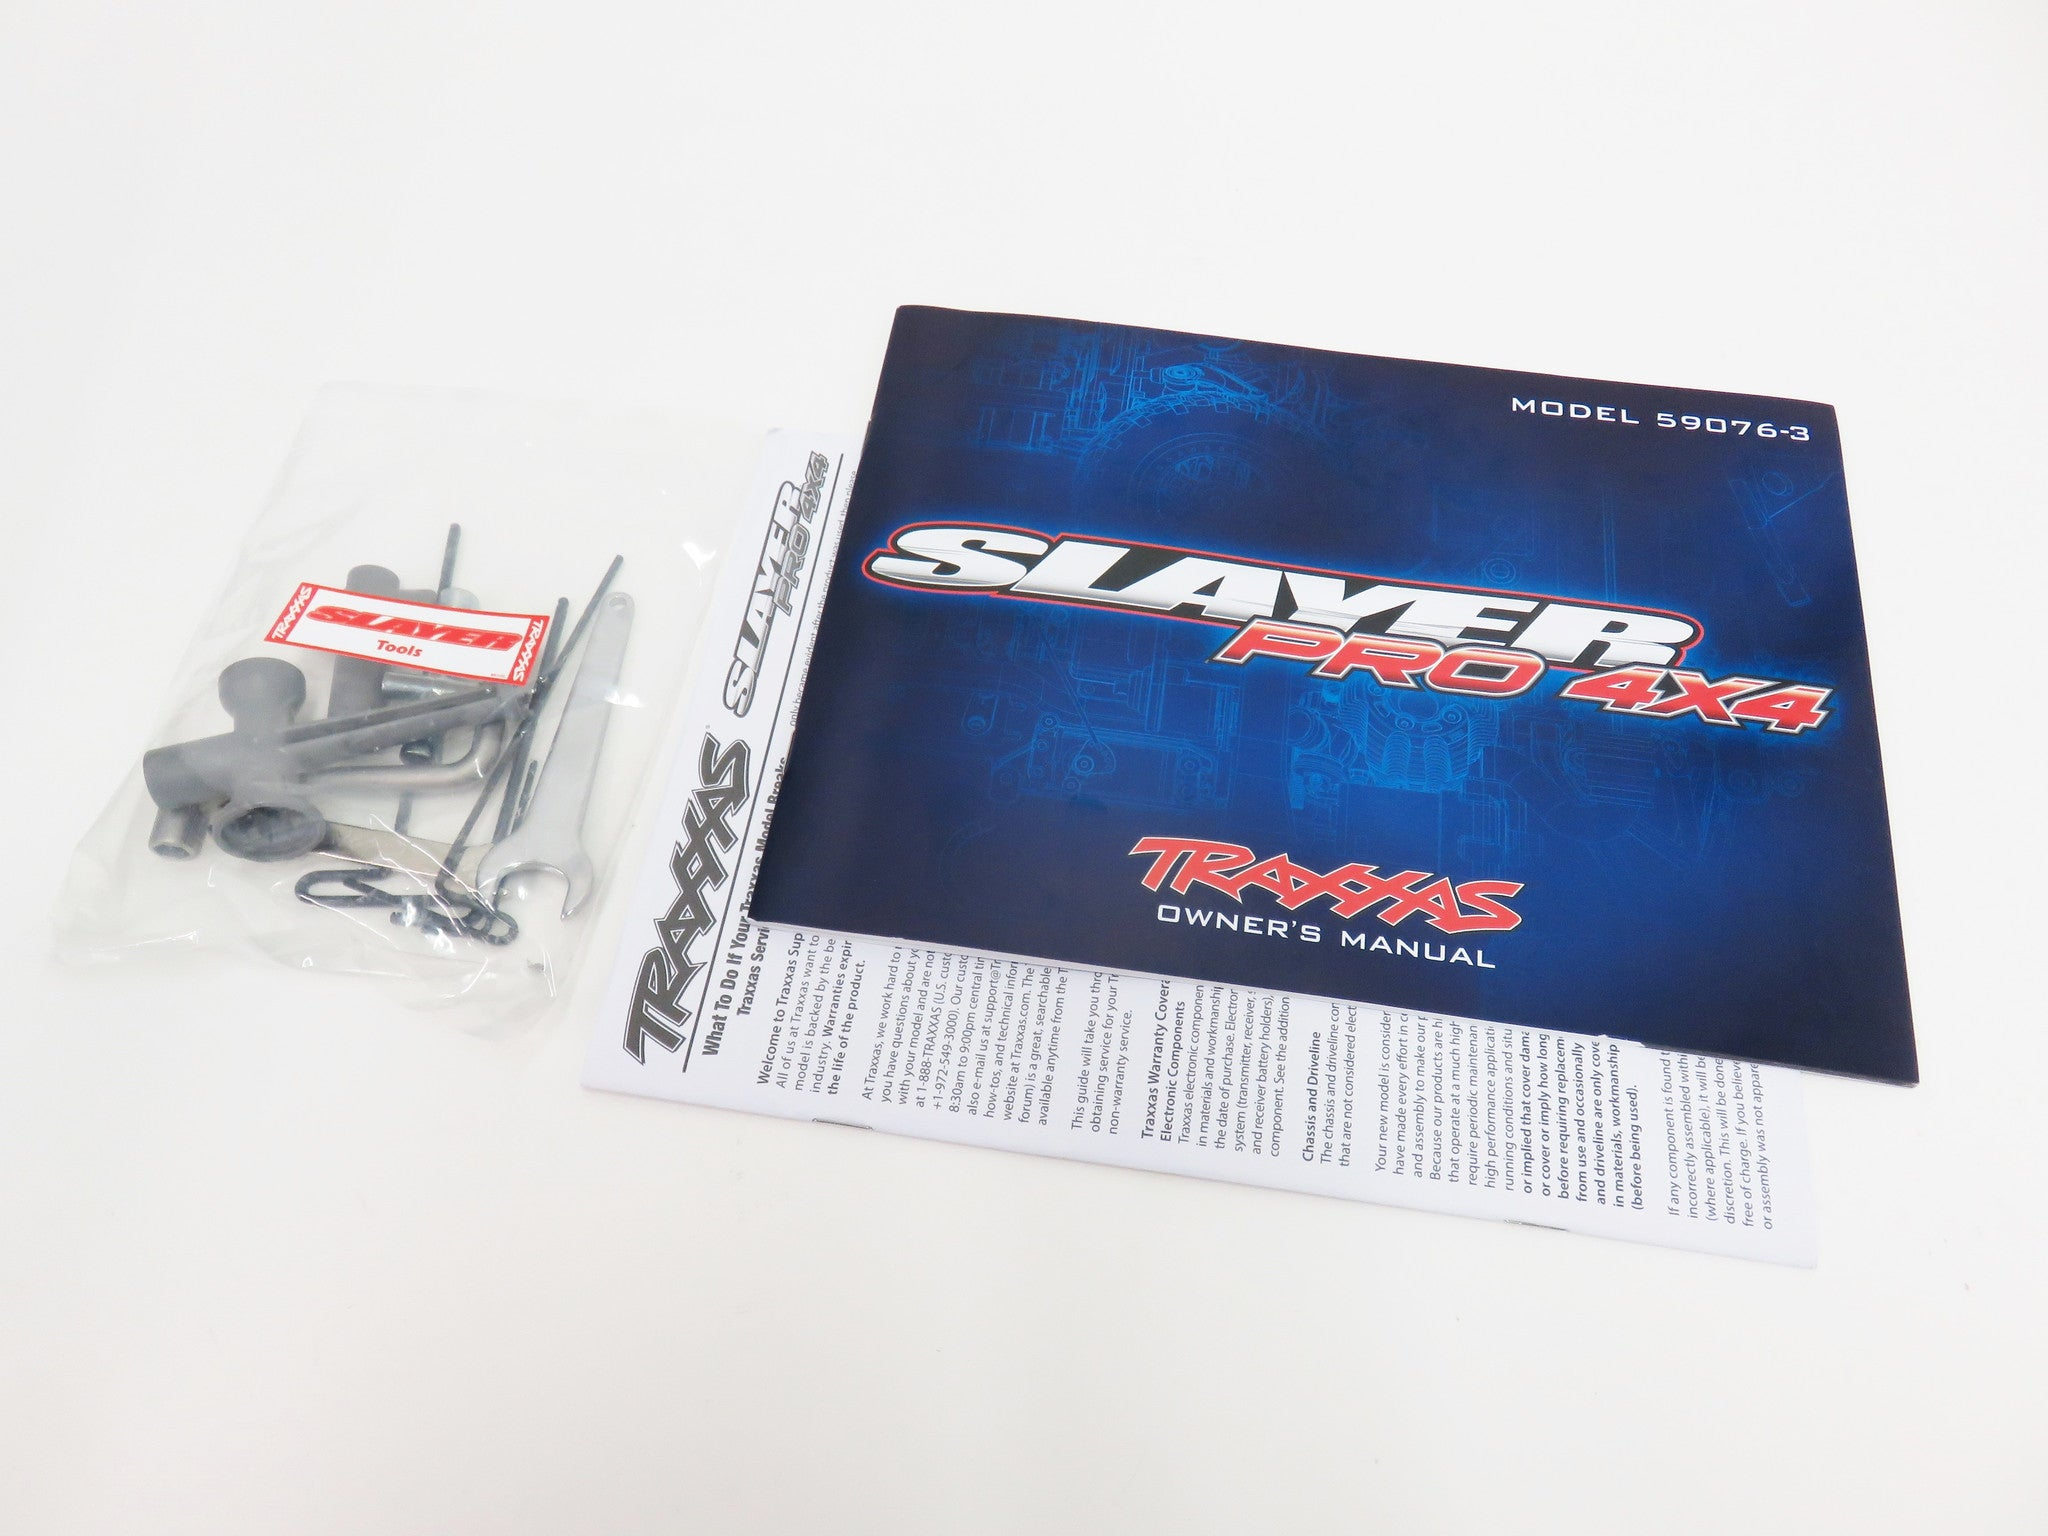 traxxas slayer pro 4x4 owners manual tool kit 5907 discount hobbyz rh discounthobbyz com traxxas slayer pro manual traxxas slayer pro 4x4 parts manual